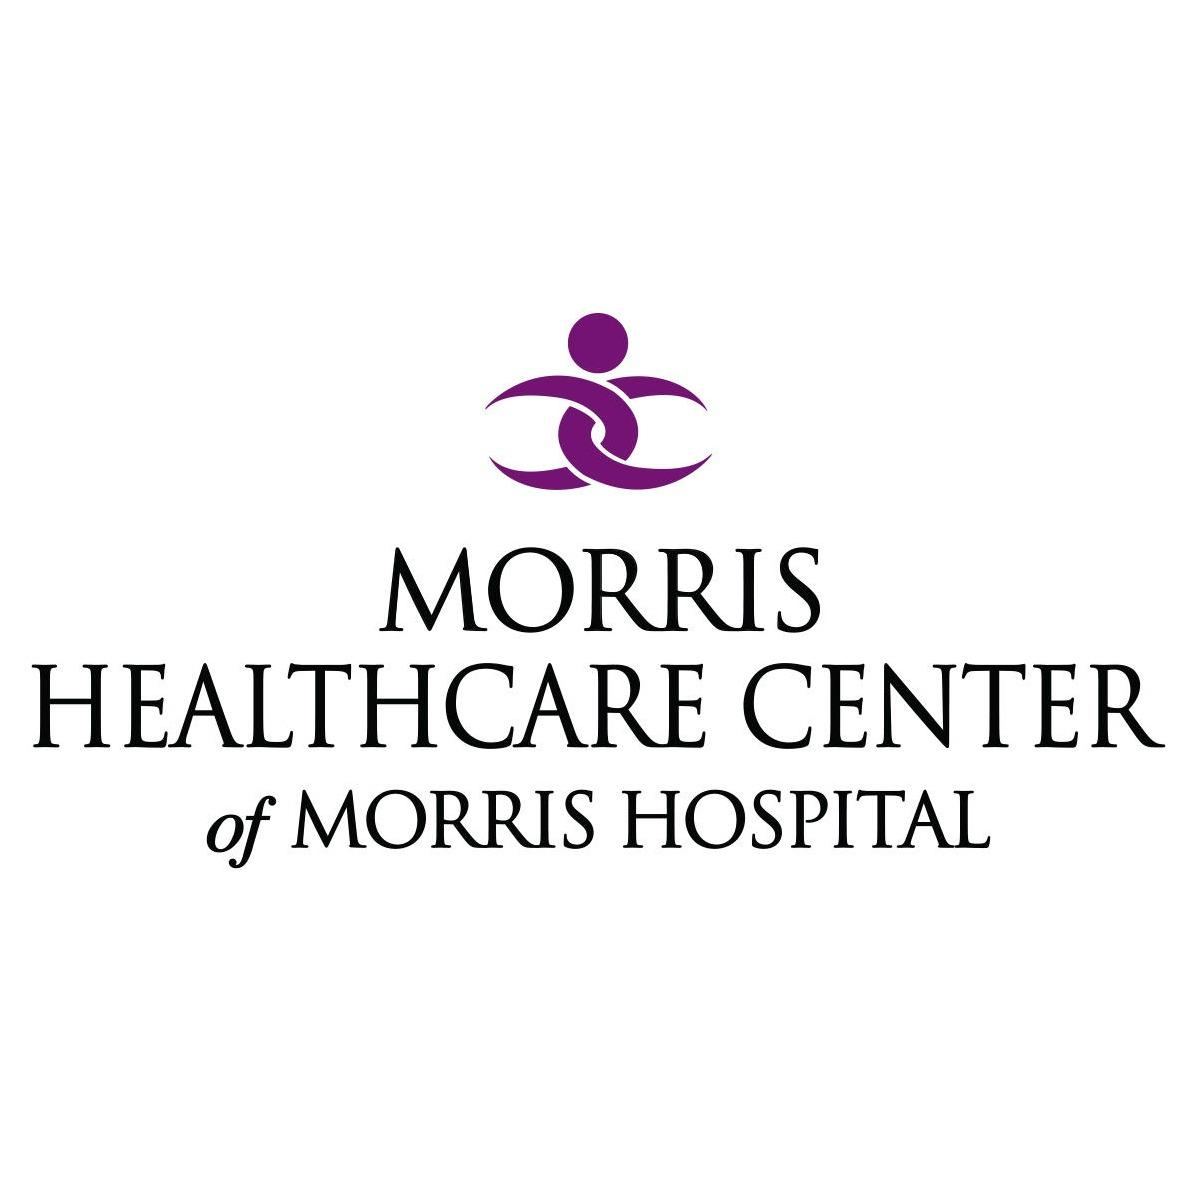 Morris Healthcare Center of Morris Hospital - Edwards Street